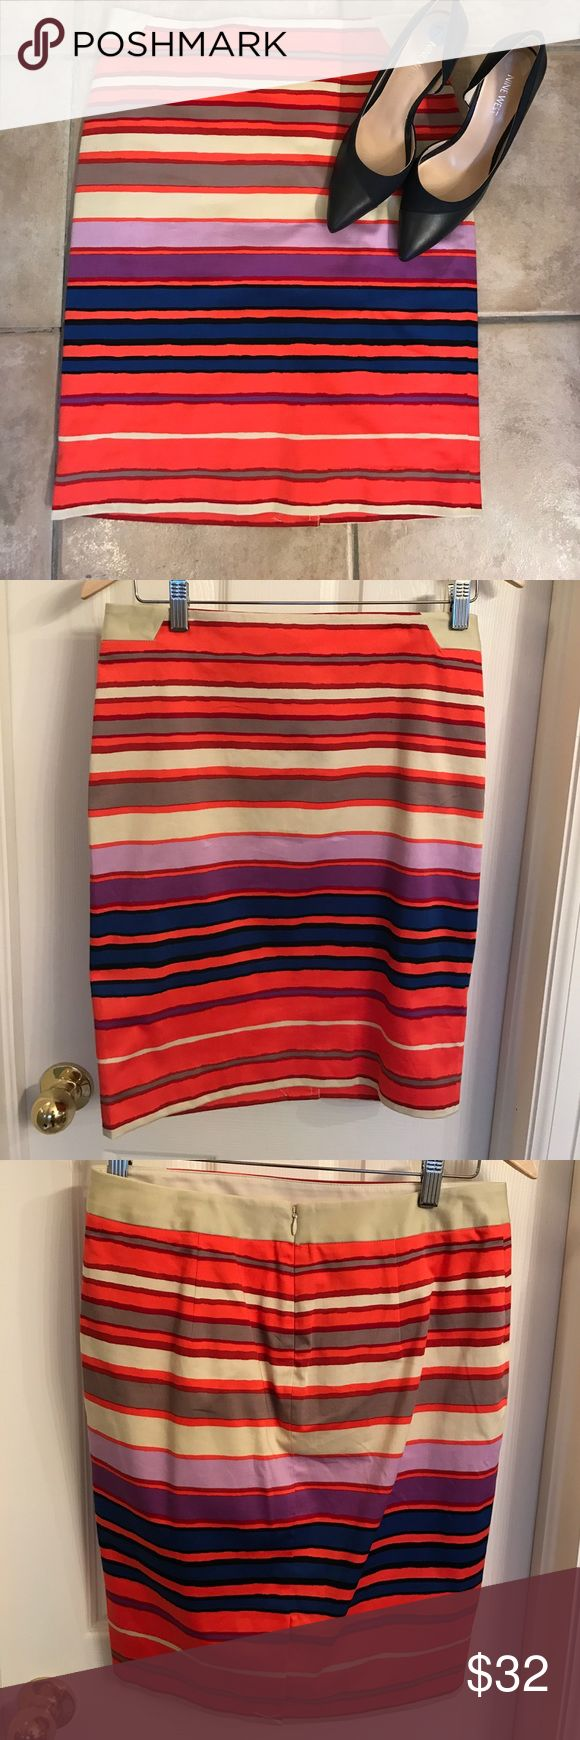 NWT The Limited Striped Pencil Skirt The Limited New With Tags Pencil Skirt. The Limited Skirts Pencil